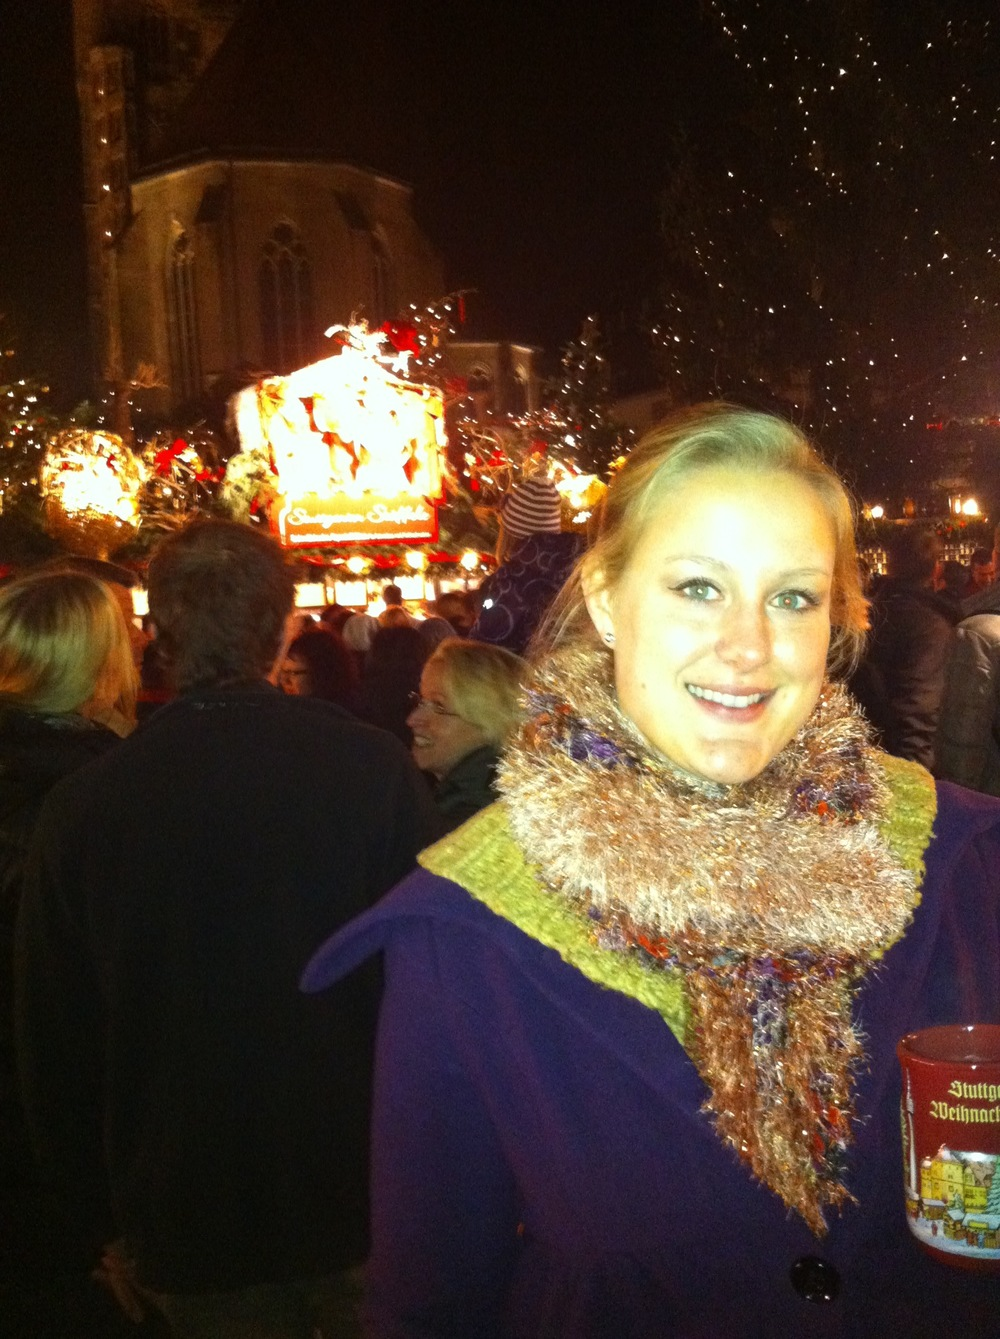 You can't visit the markets without a hot mug of gluhwein (or hot, mulled wine with seasonal spices)